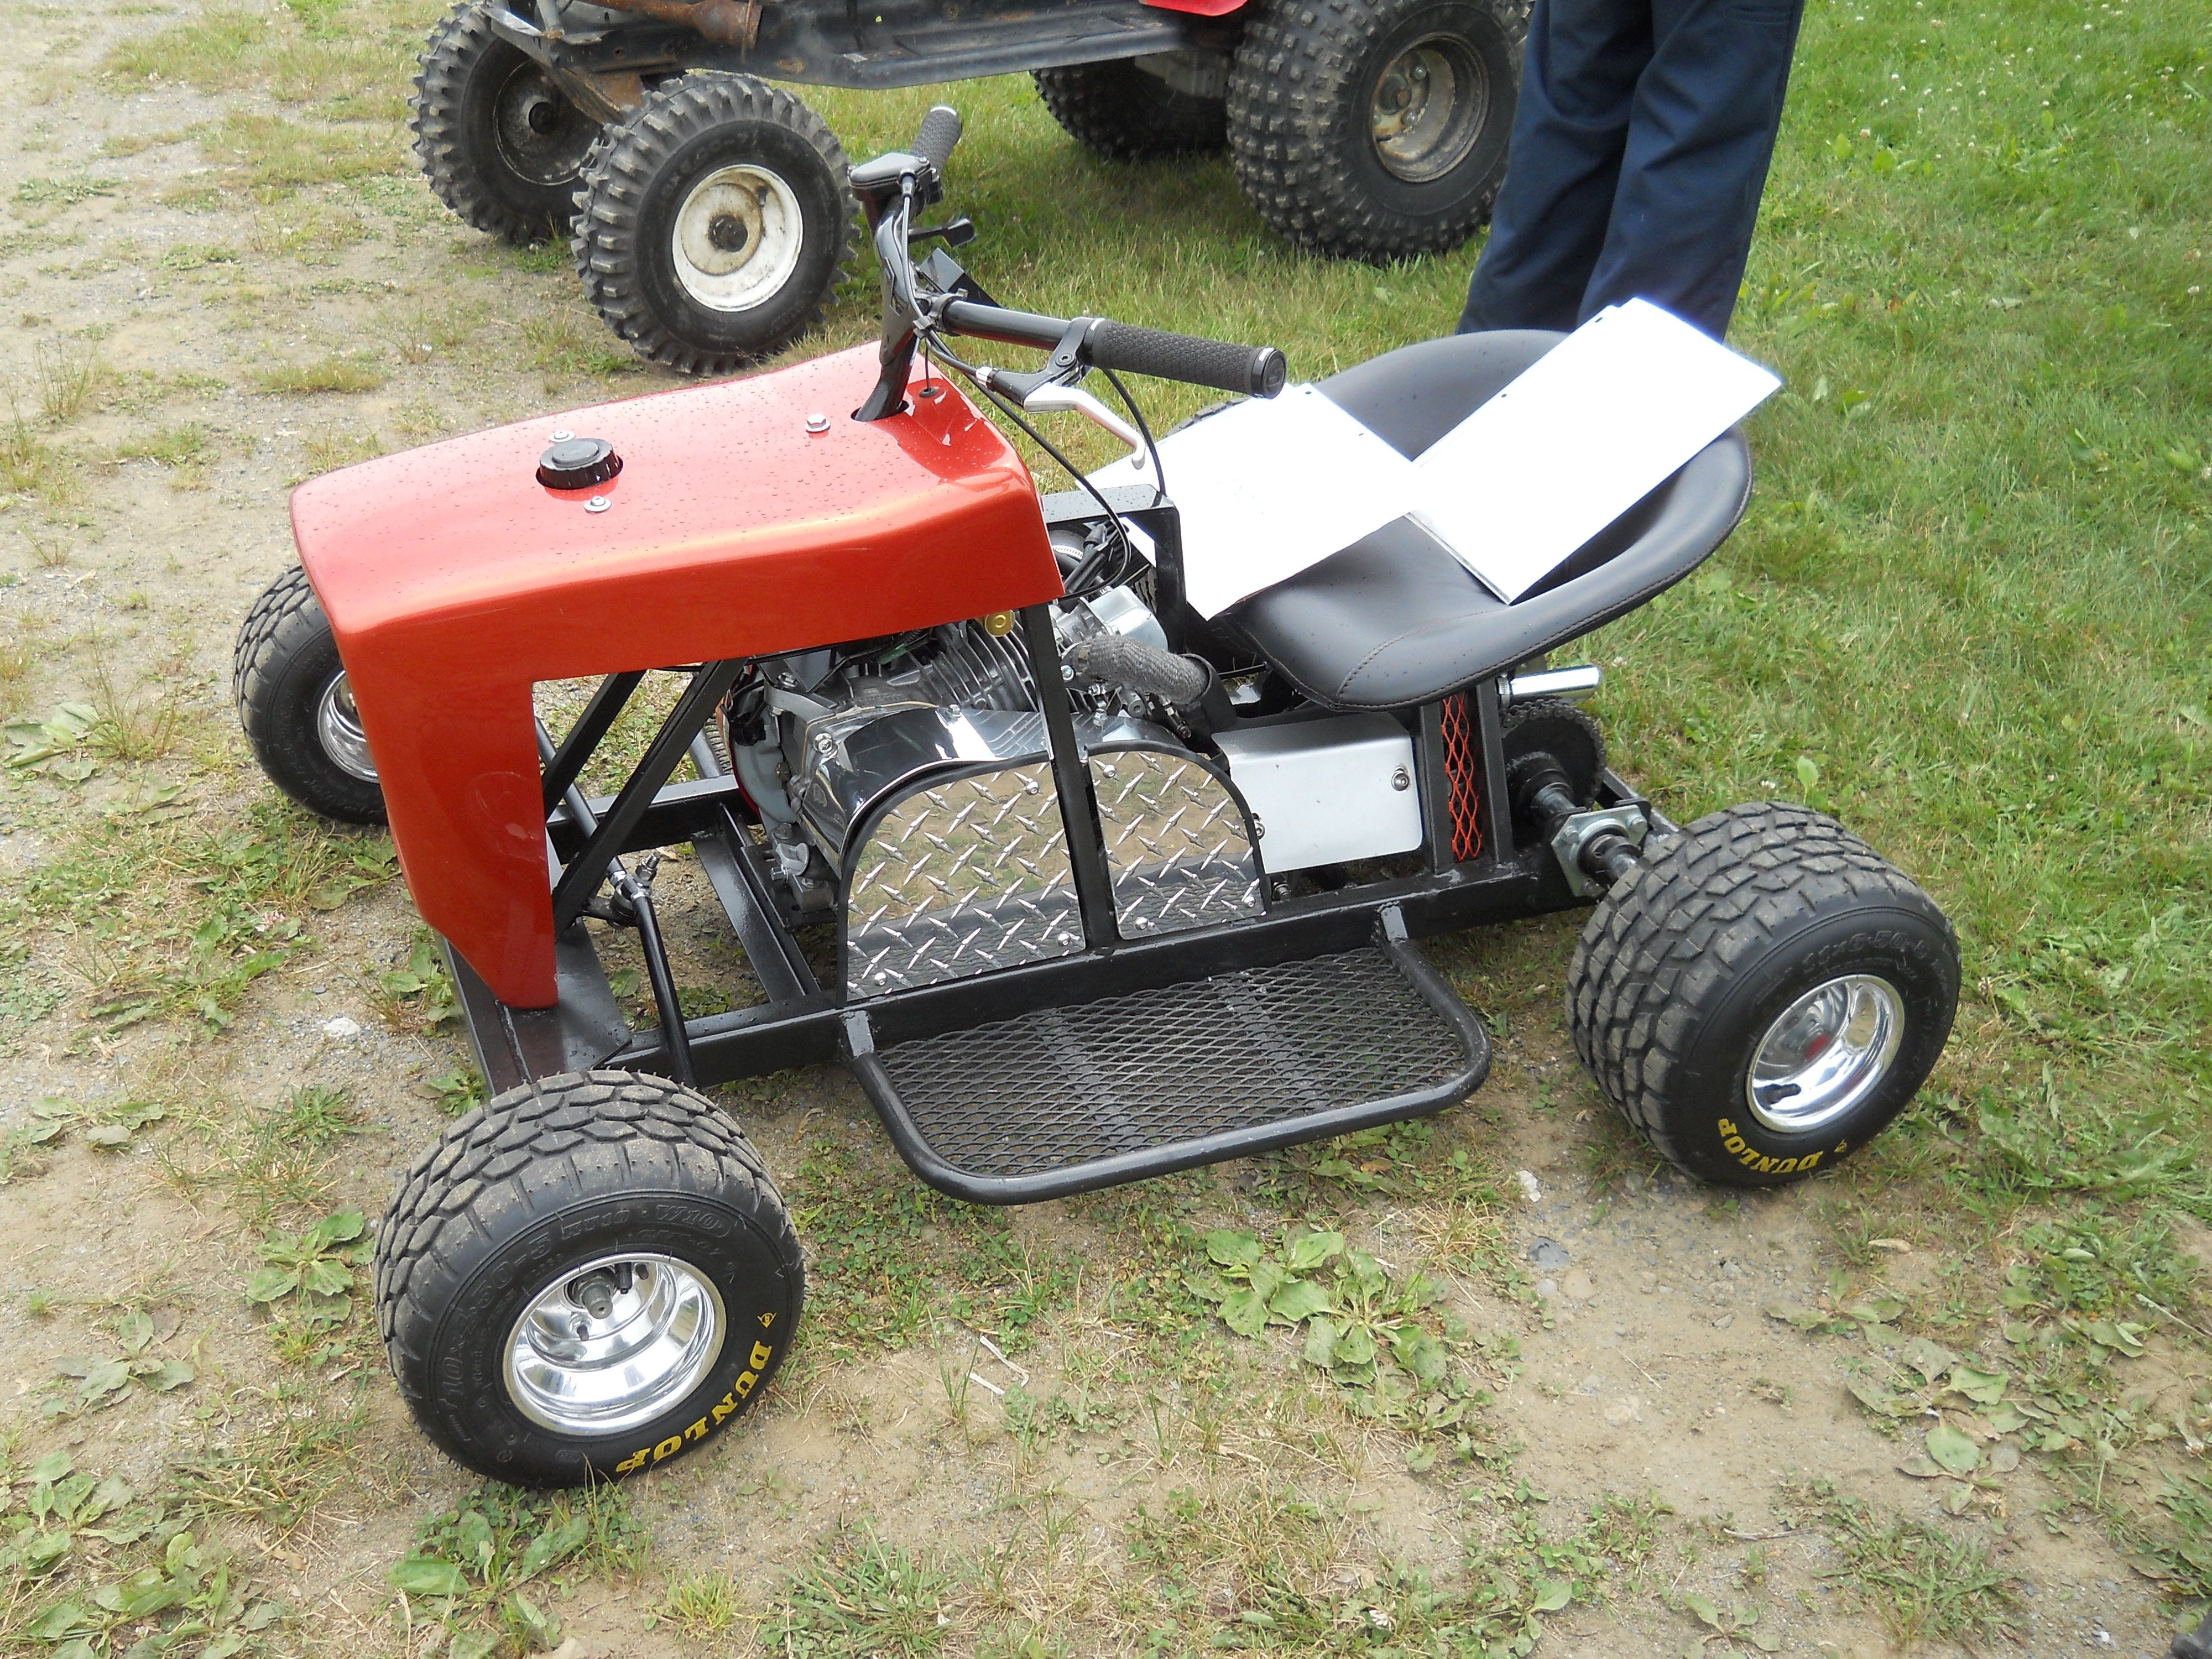 Cub Cadet Lawn Tractor 2012 Engine Accessories Diagram And Parts